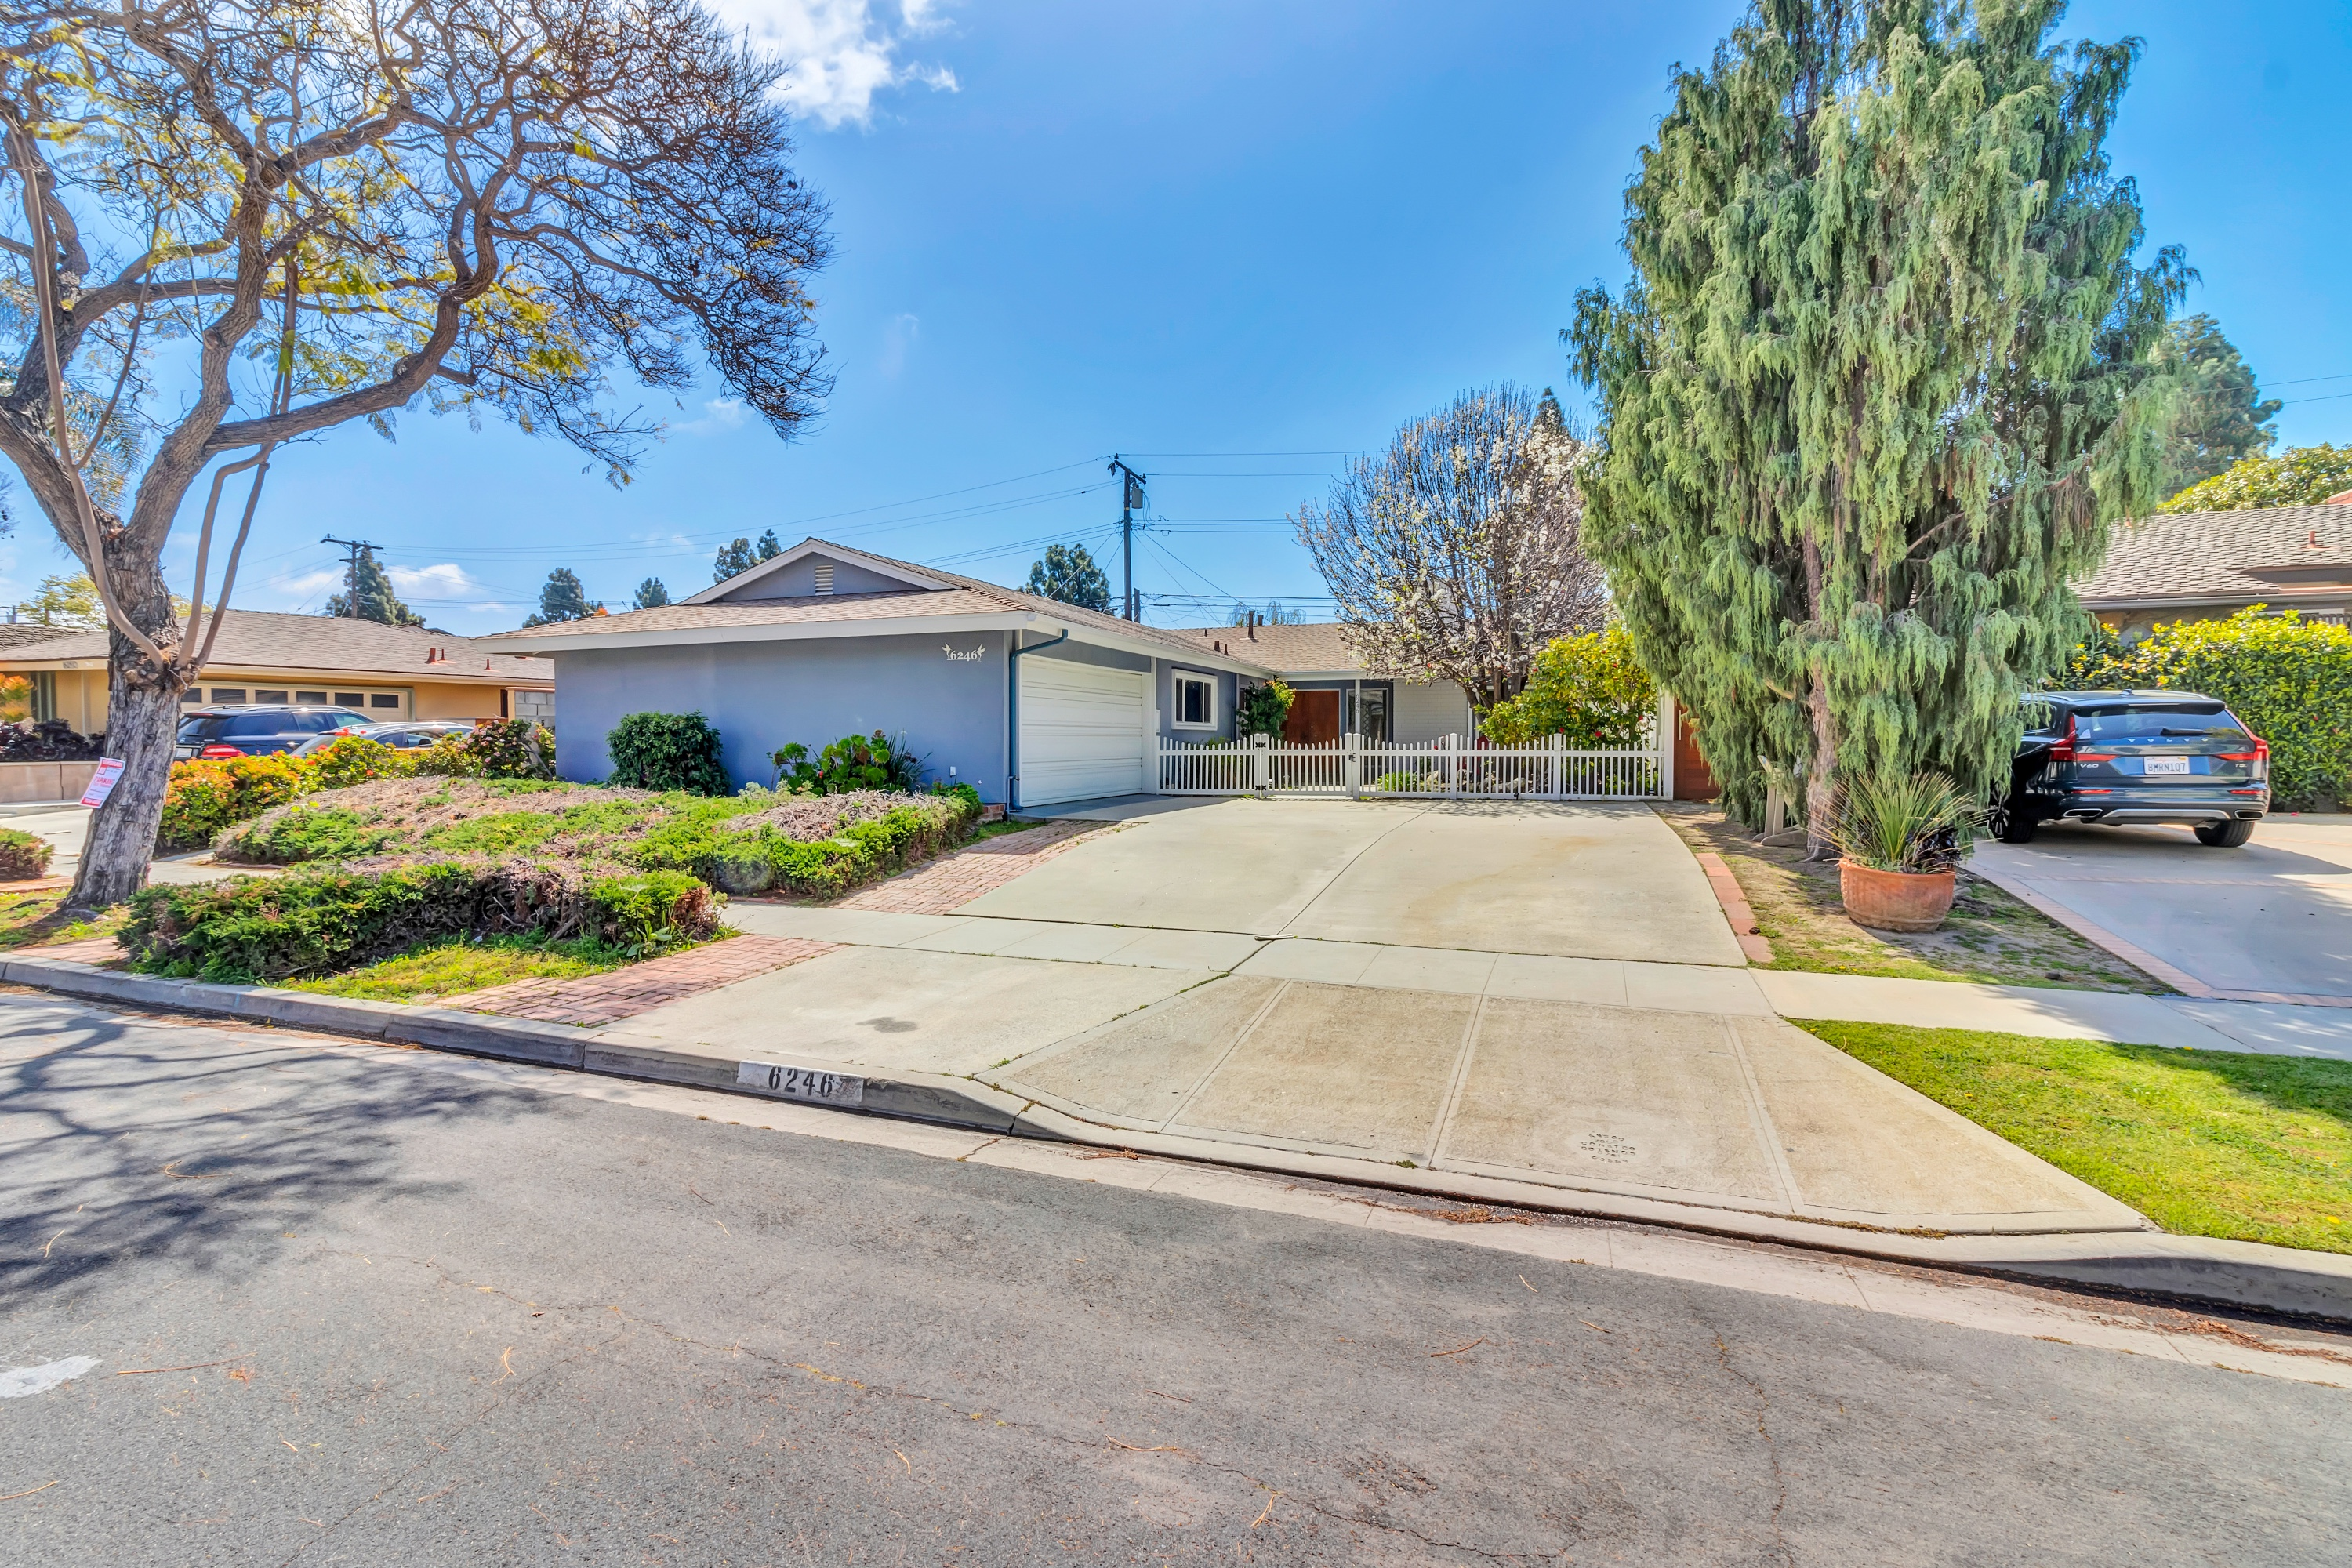 Turnkey Home Across From Cal State Long Beach!